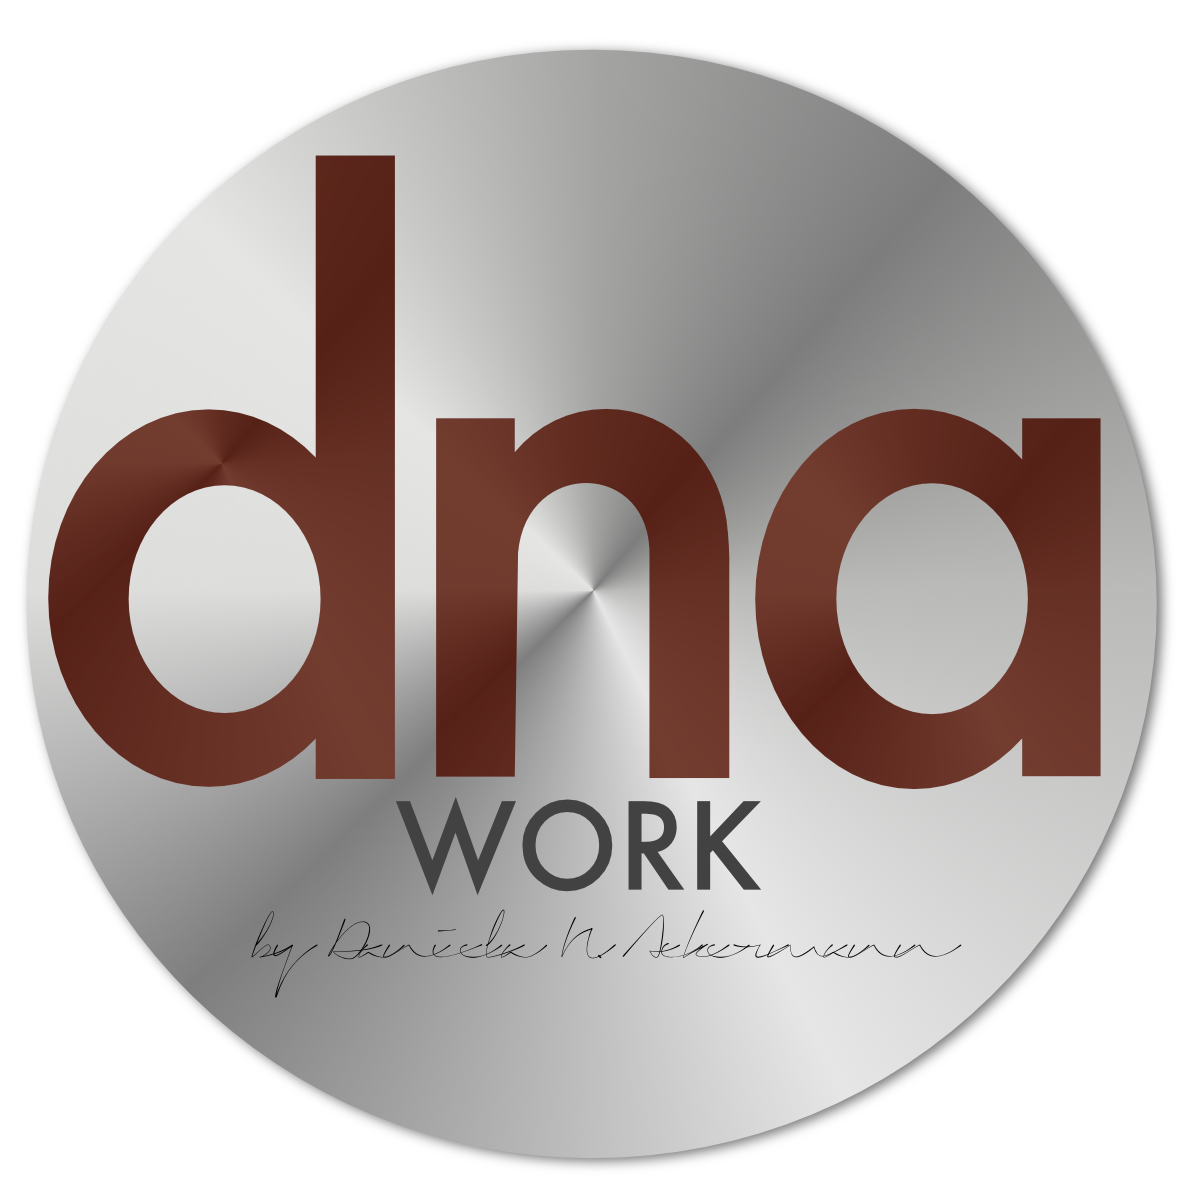 dna work logo 2015 button